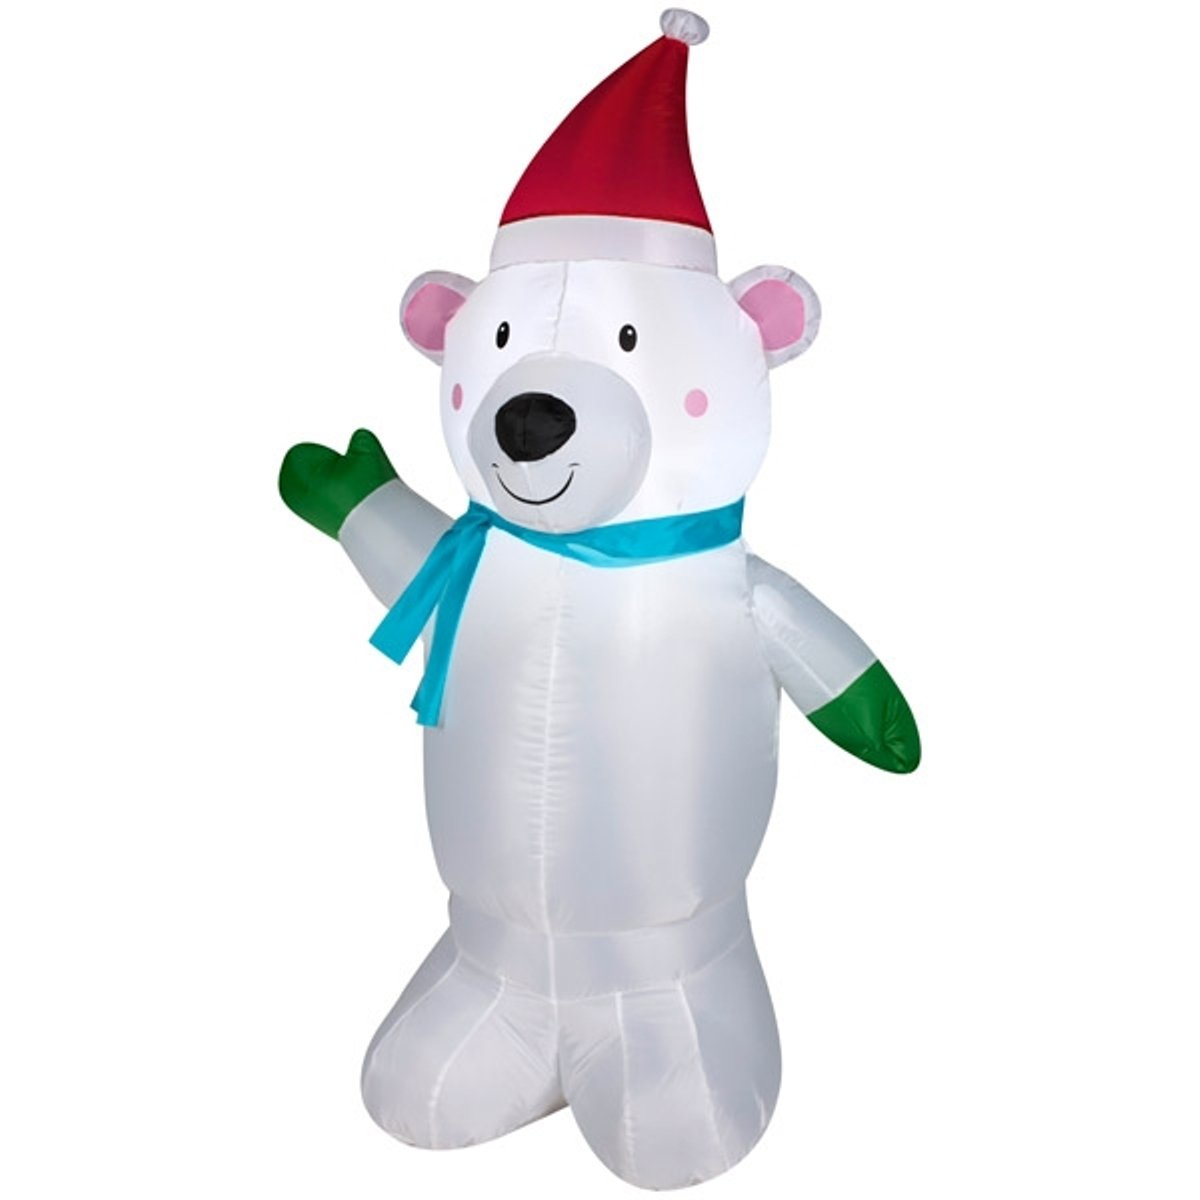 amazoncom gemmy airblown inflatable polar bear wearing santa hat green mittens and a blue scarf holiday indoor outdoor decoration 4 feet tall garden - Walmart Christmas Lawn Decorations